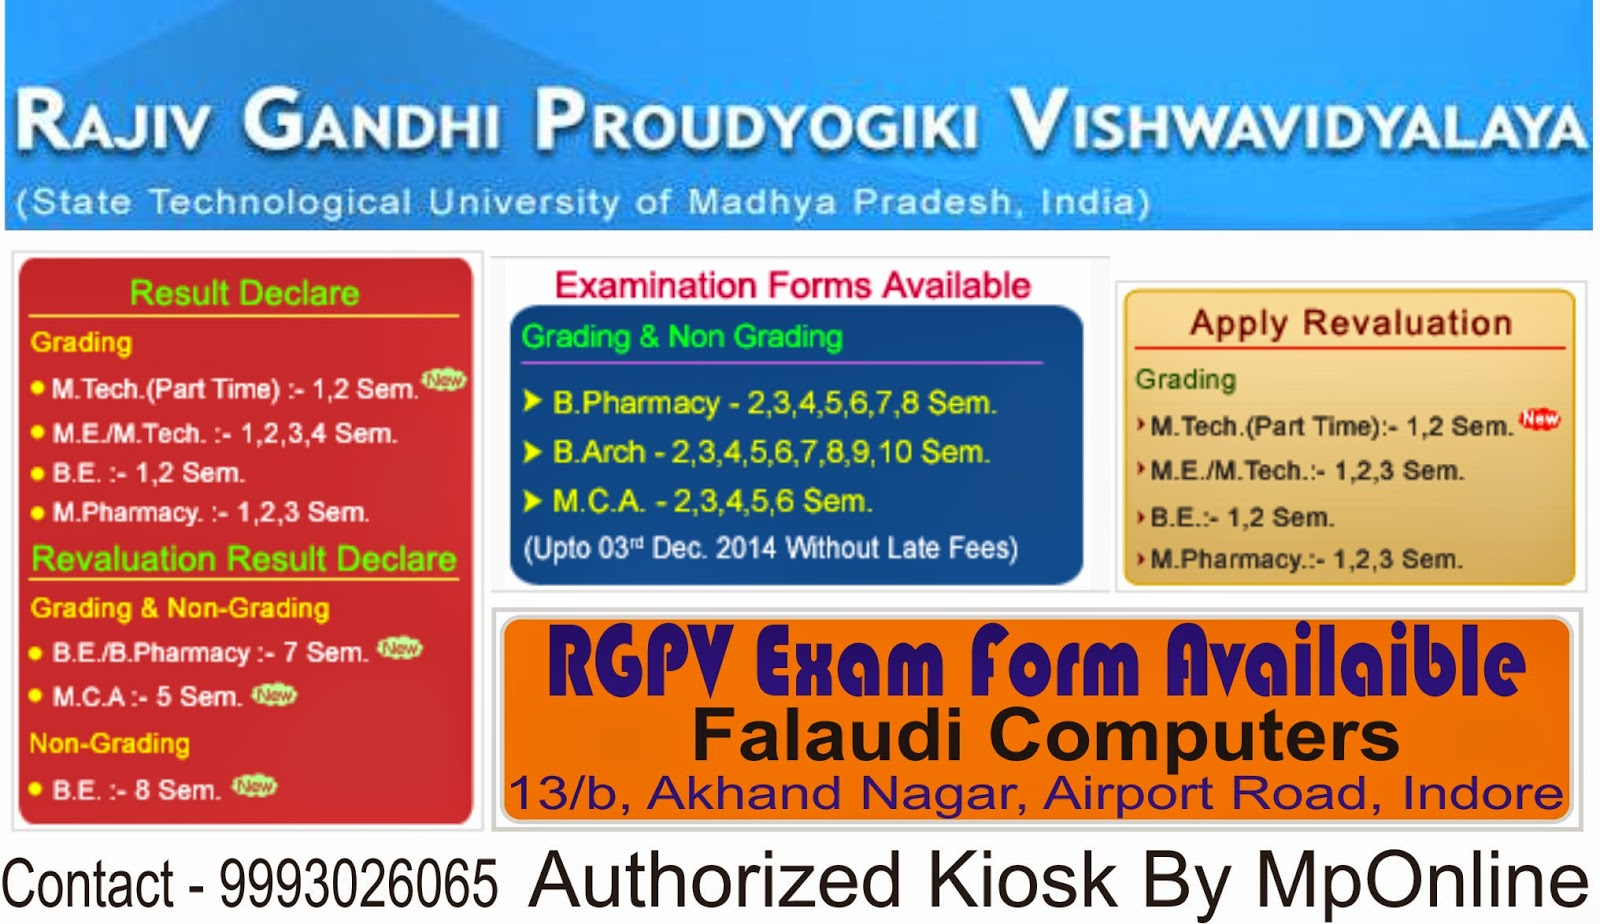 Rgpv exam form mponline